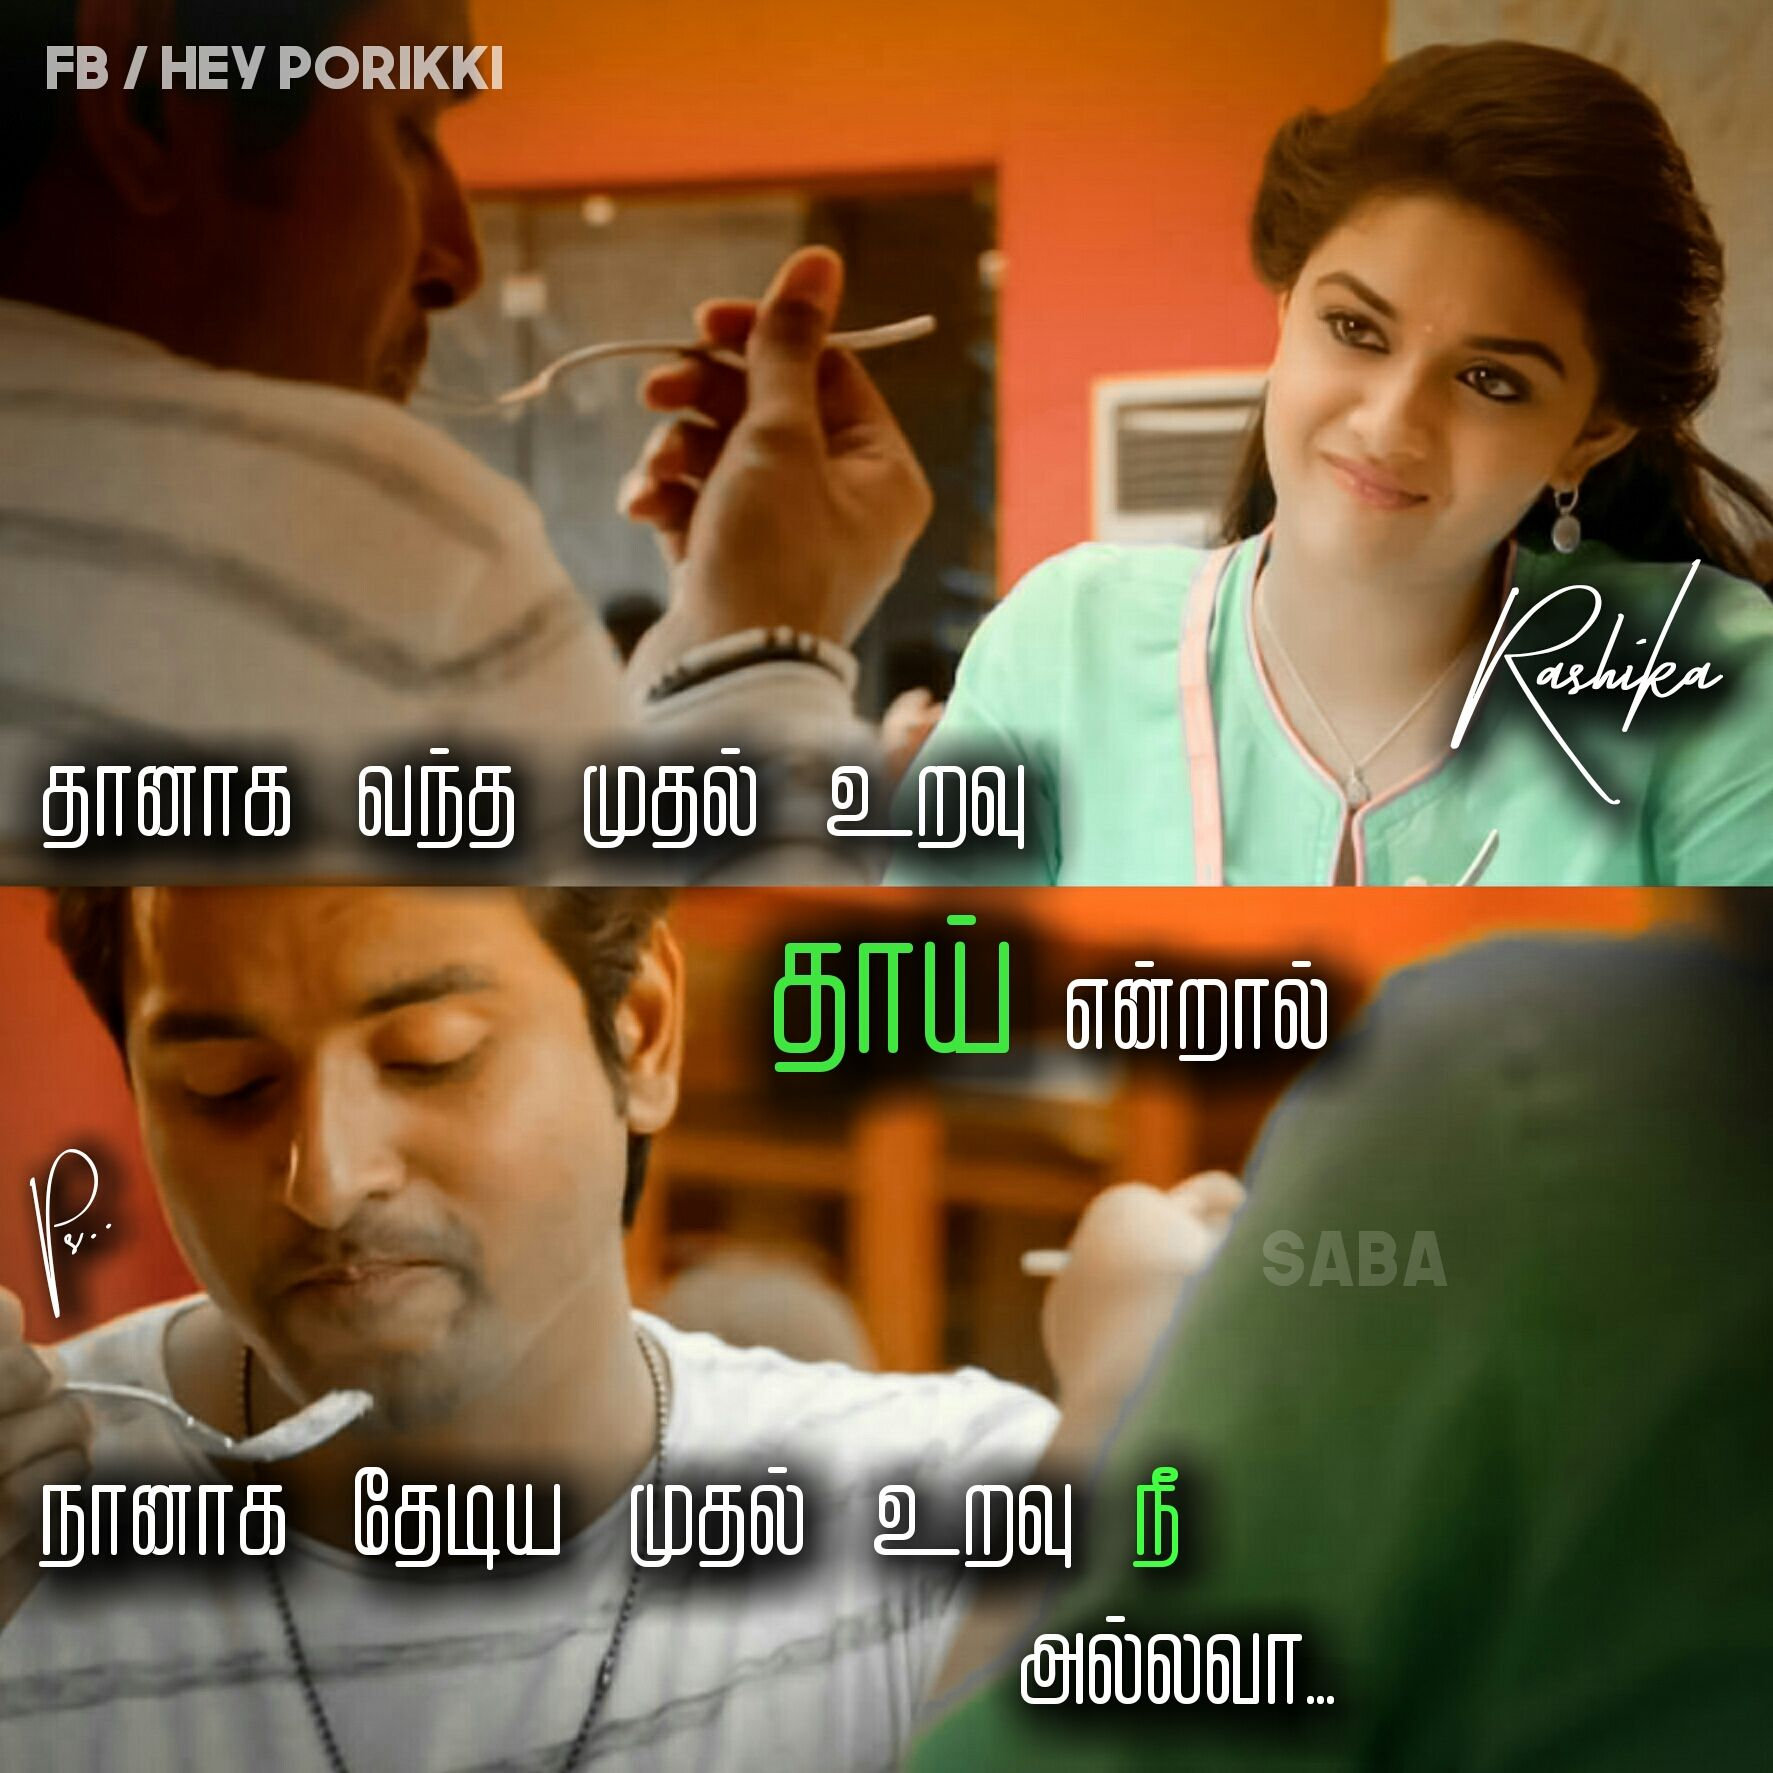 Pin by MithSun on Love in 2020 (With images) Tamil love